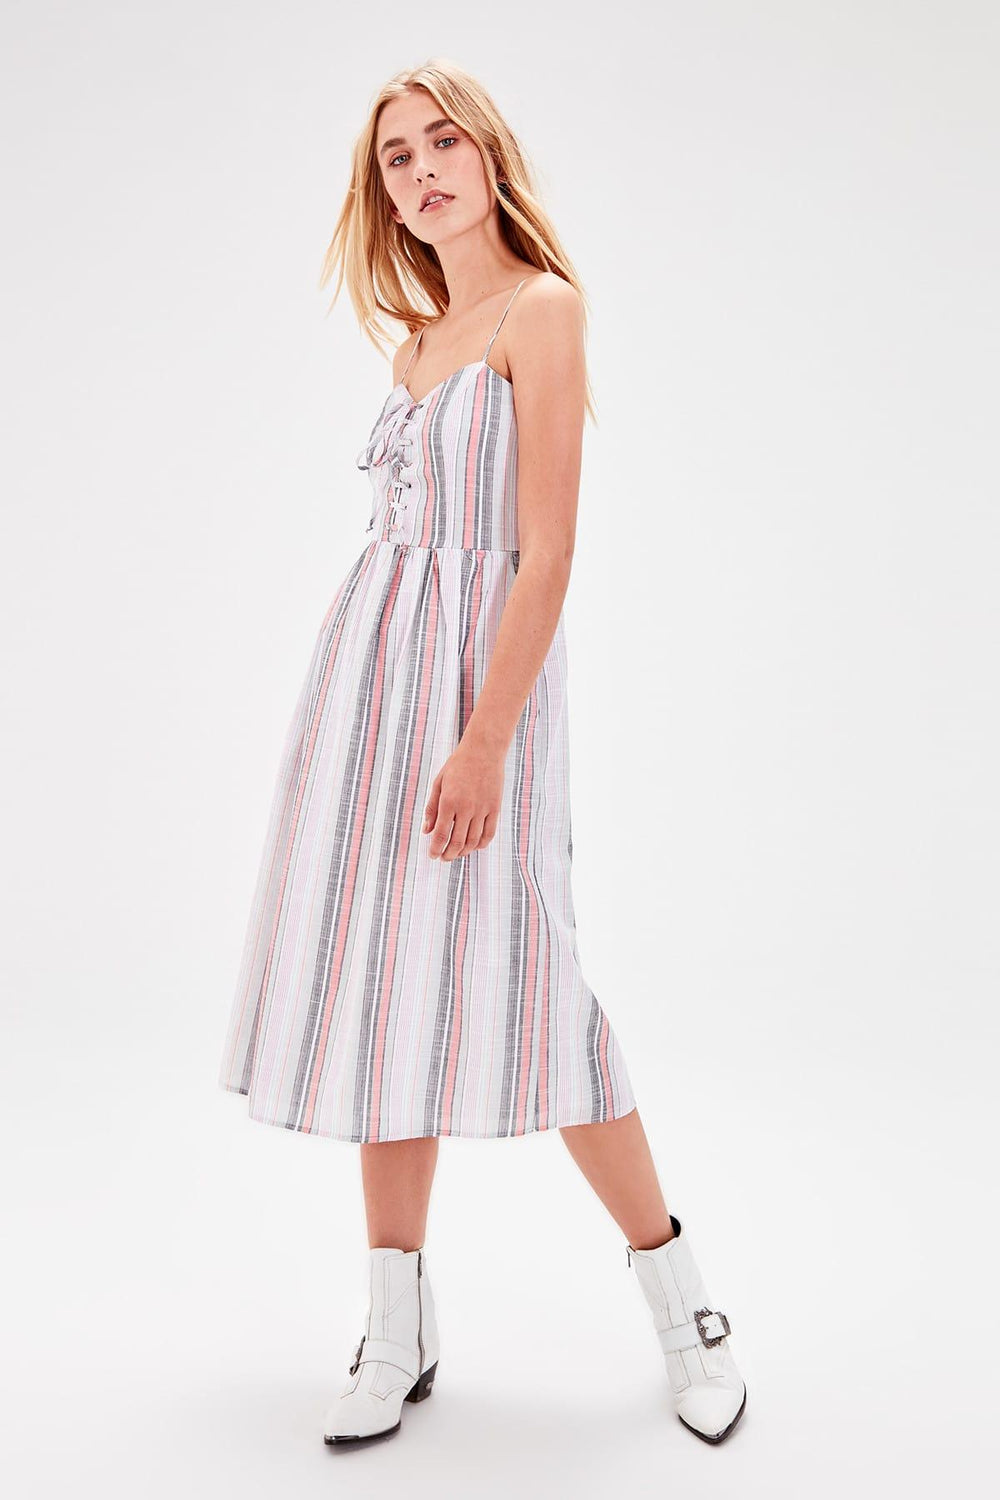 Miss Zut Miss Zut With Multi-Colored Strap Dress Miss Zut &CO